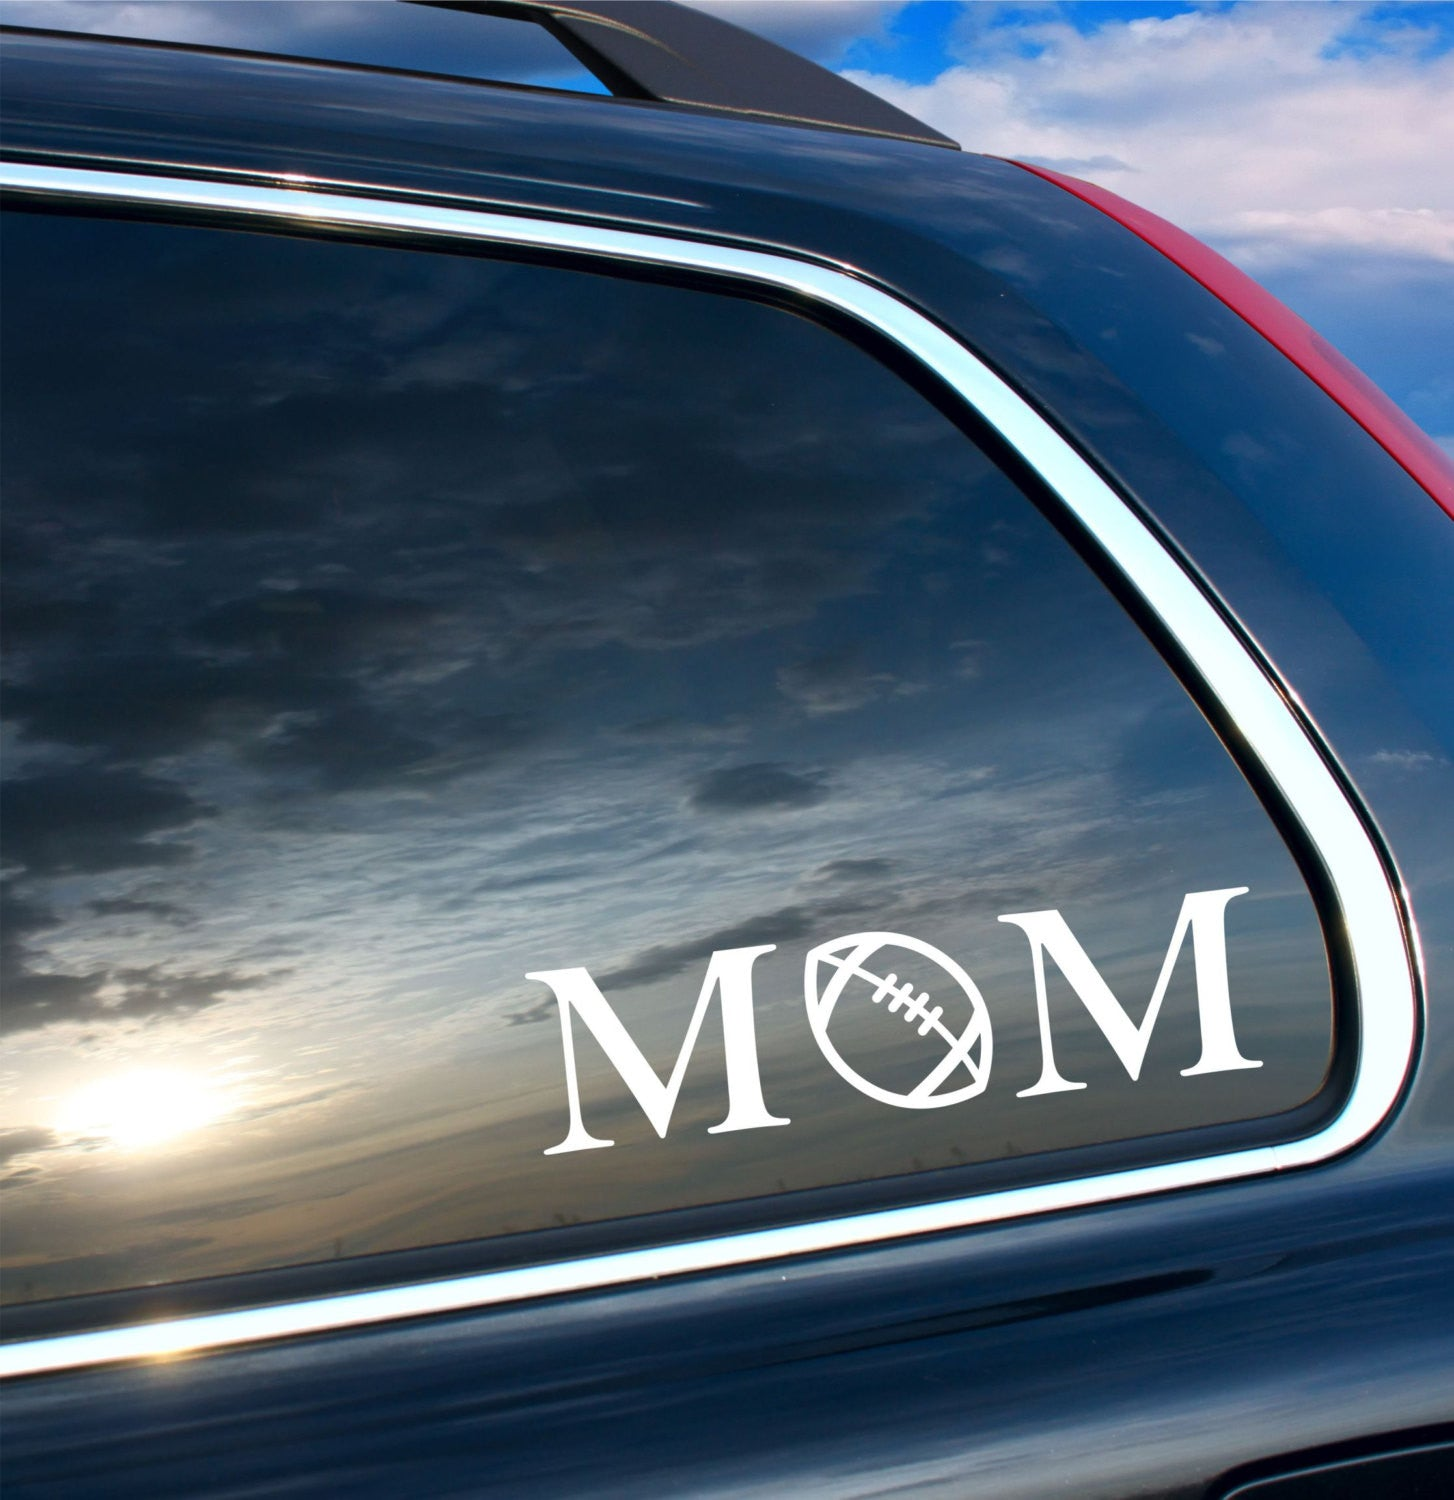 Mom football car decal by decor designs decals football mom sticker